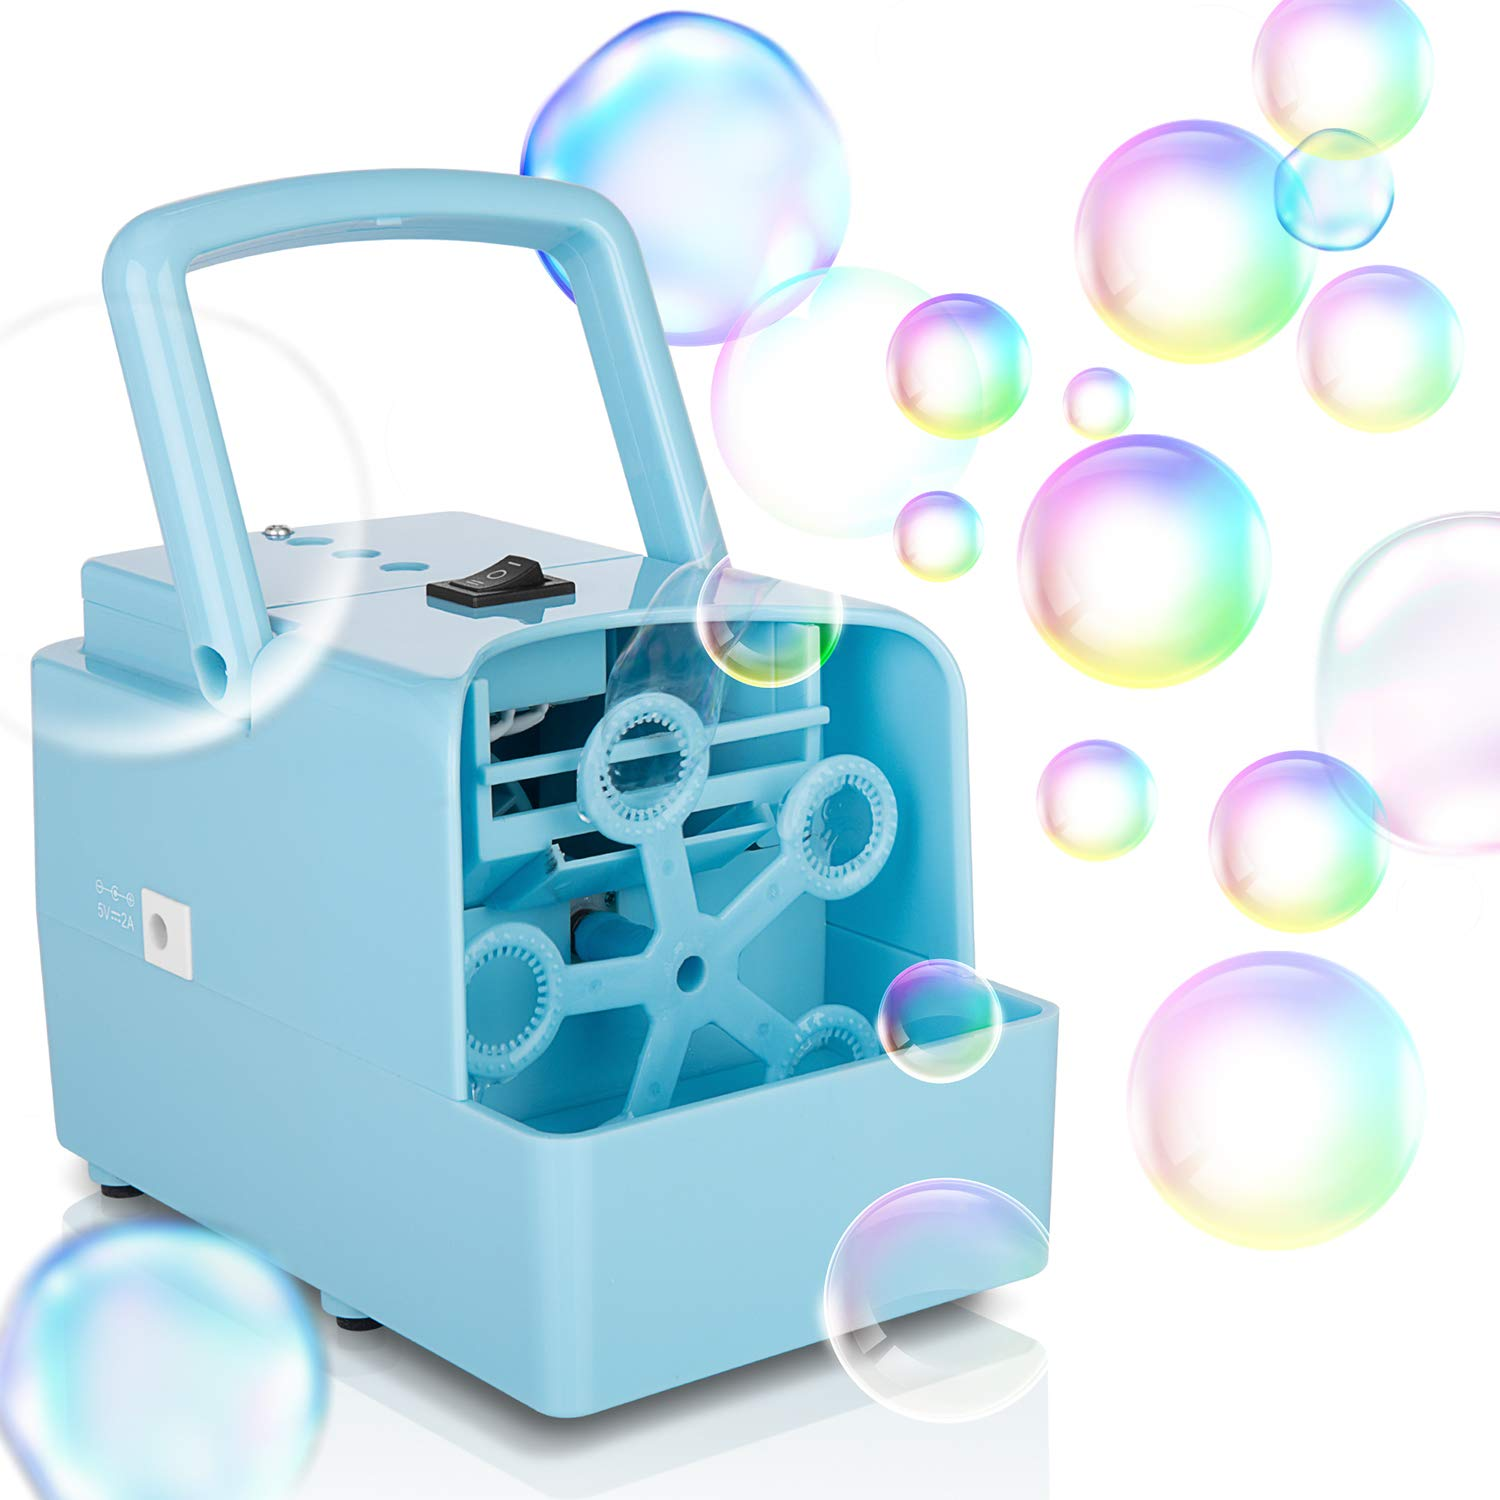 Bubble Machine, Portable Bubble Maker Toy for Kids, Automatic Bubble Blower 2000+ per Min, 2 Speed Levels for Party Wedding Indoor Outdoor Activities, Powered By DC Cable or 4xAA Battery(Not Included) by KIDWILL